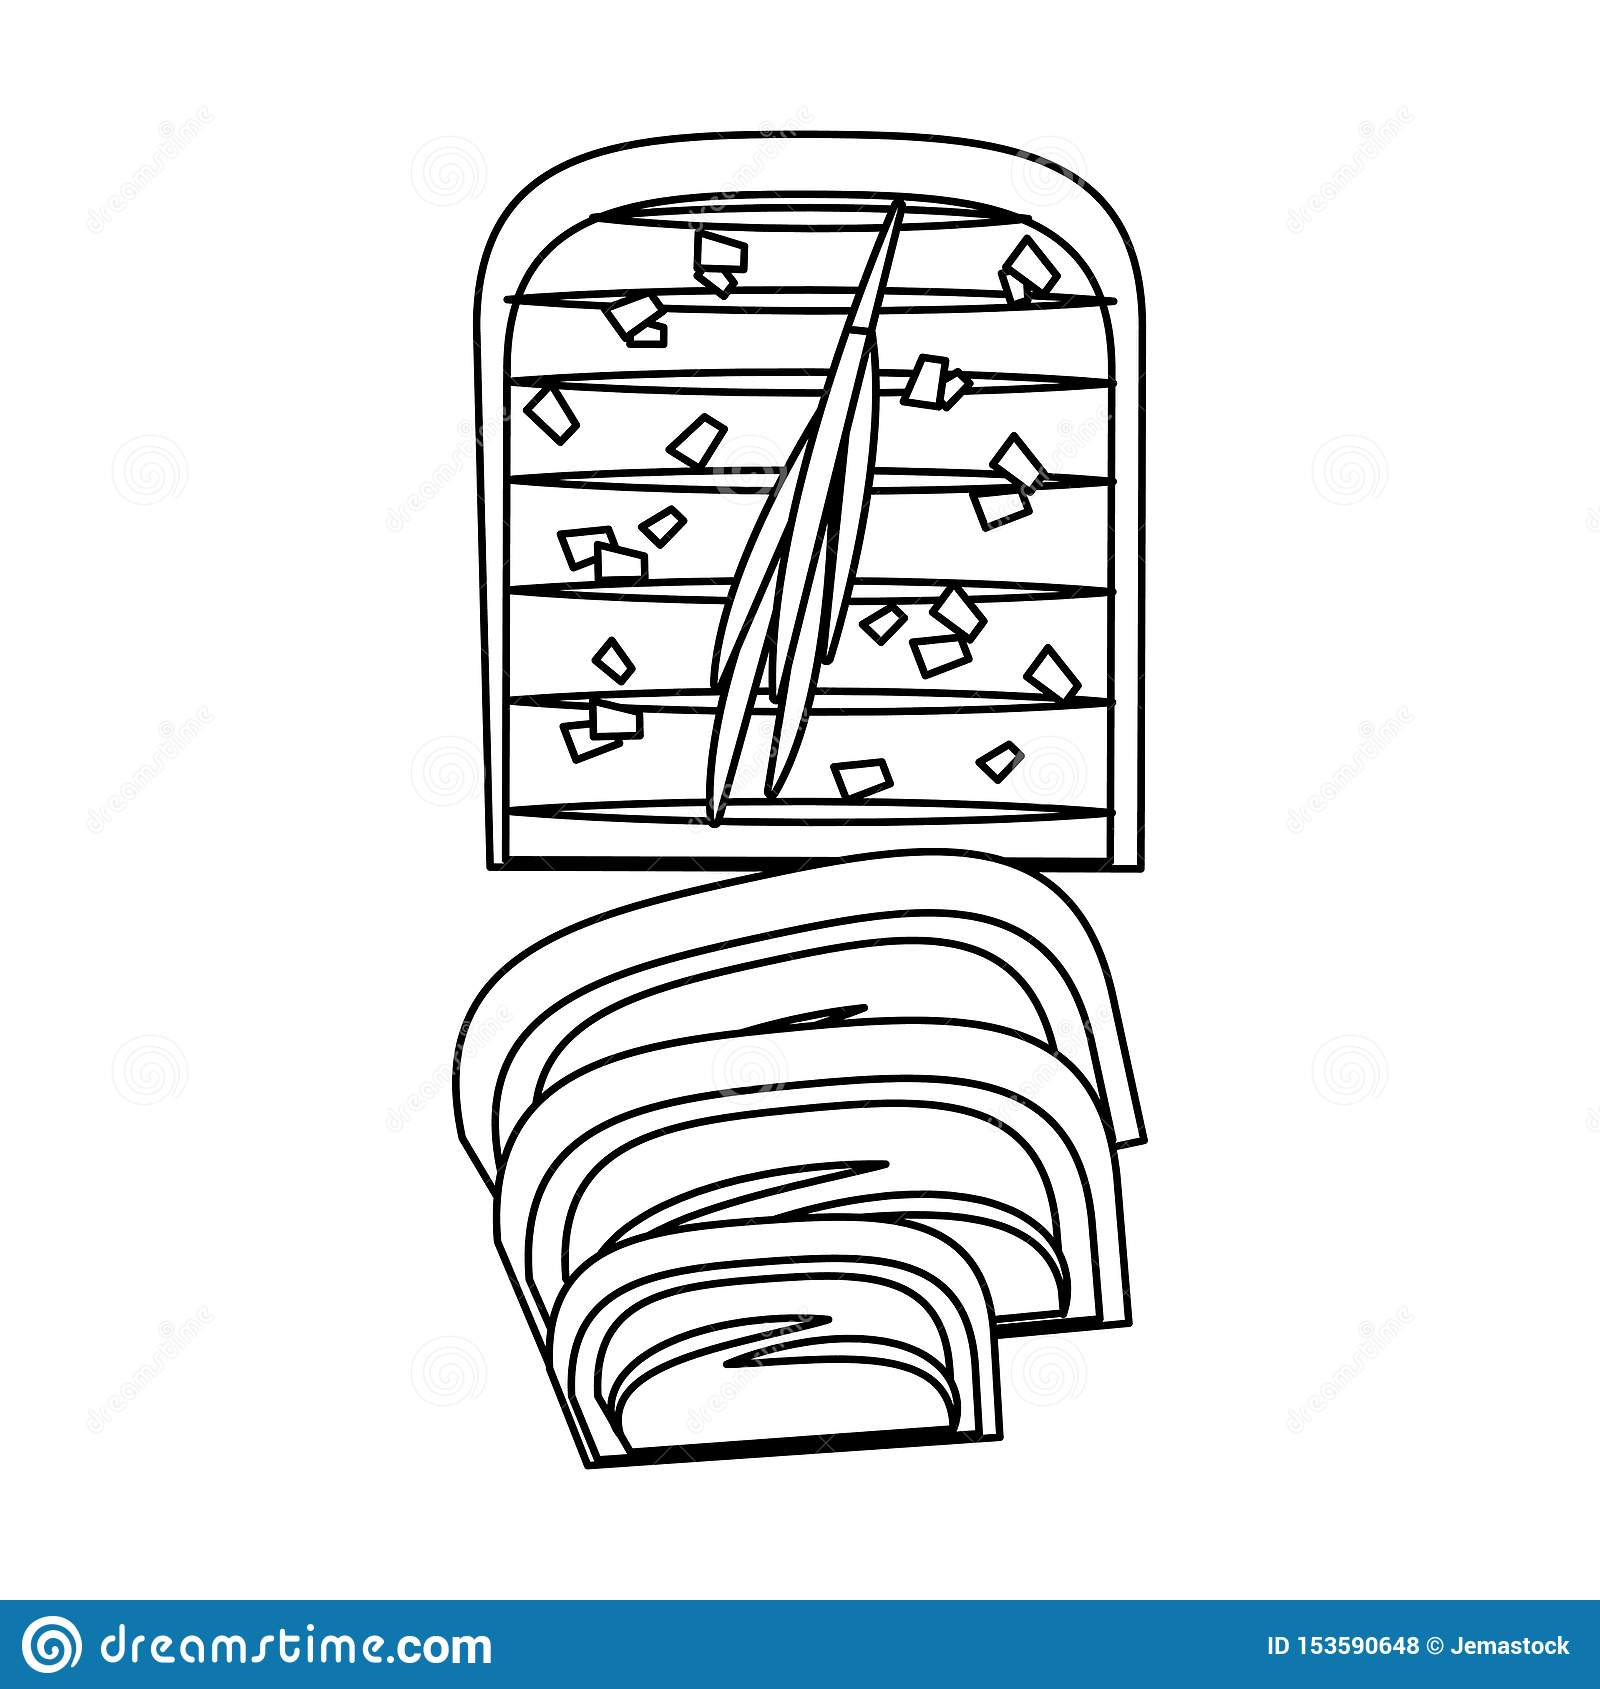 barbecue food beef steak grilled cartoon in black and white stock vector illustration of fatty hotdog 153590648 dreamstime com